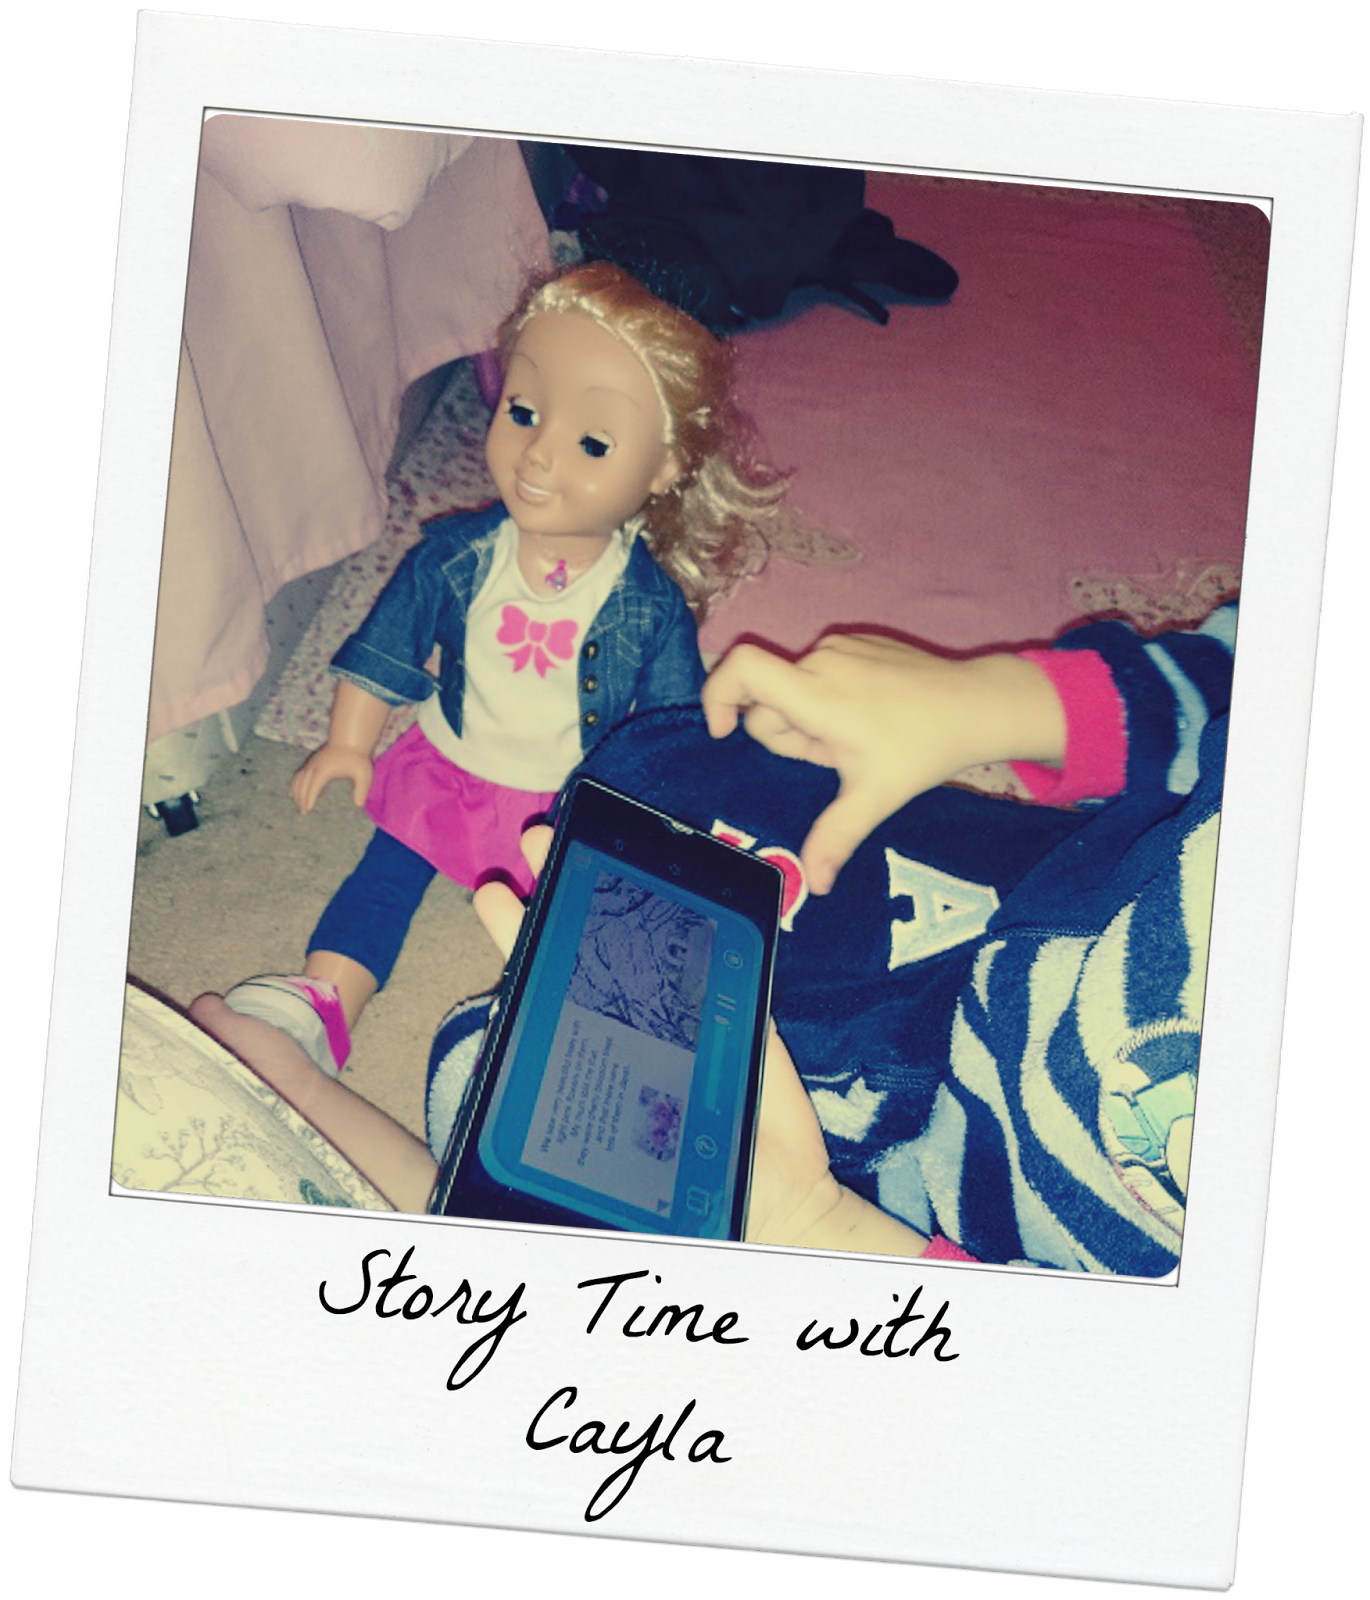 My friend Cayla, story telling doll, interactive doll